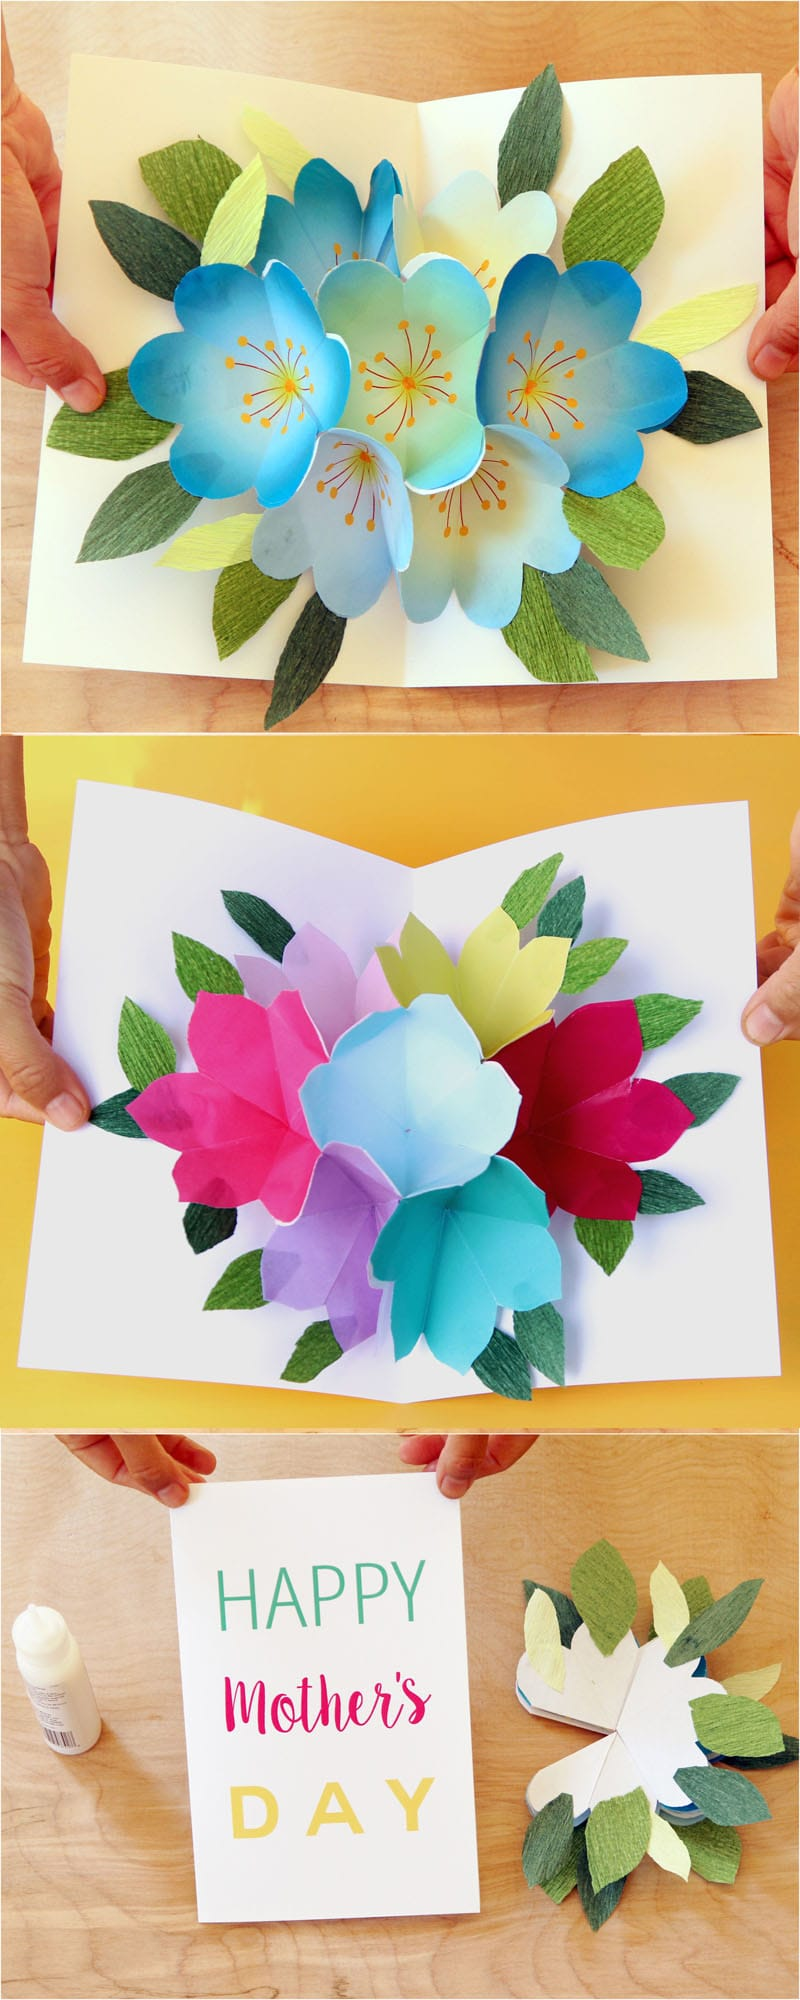 Pop up flowers diy printable mothers day card a piece of rainbow in addition to the free printable mothers day card and the pop up bouquet templates i will also share with you another set of pop up flowers templates with kristyandbryce Image collections